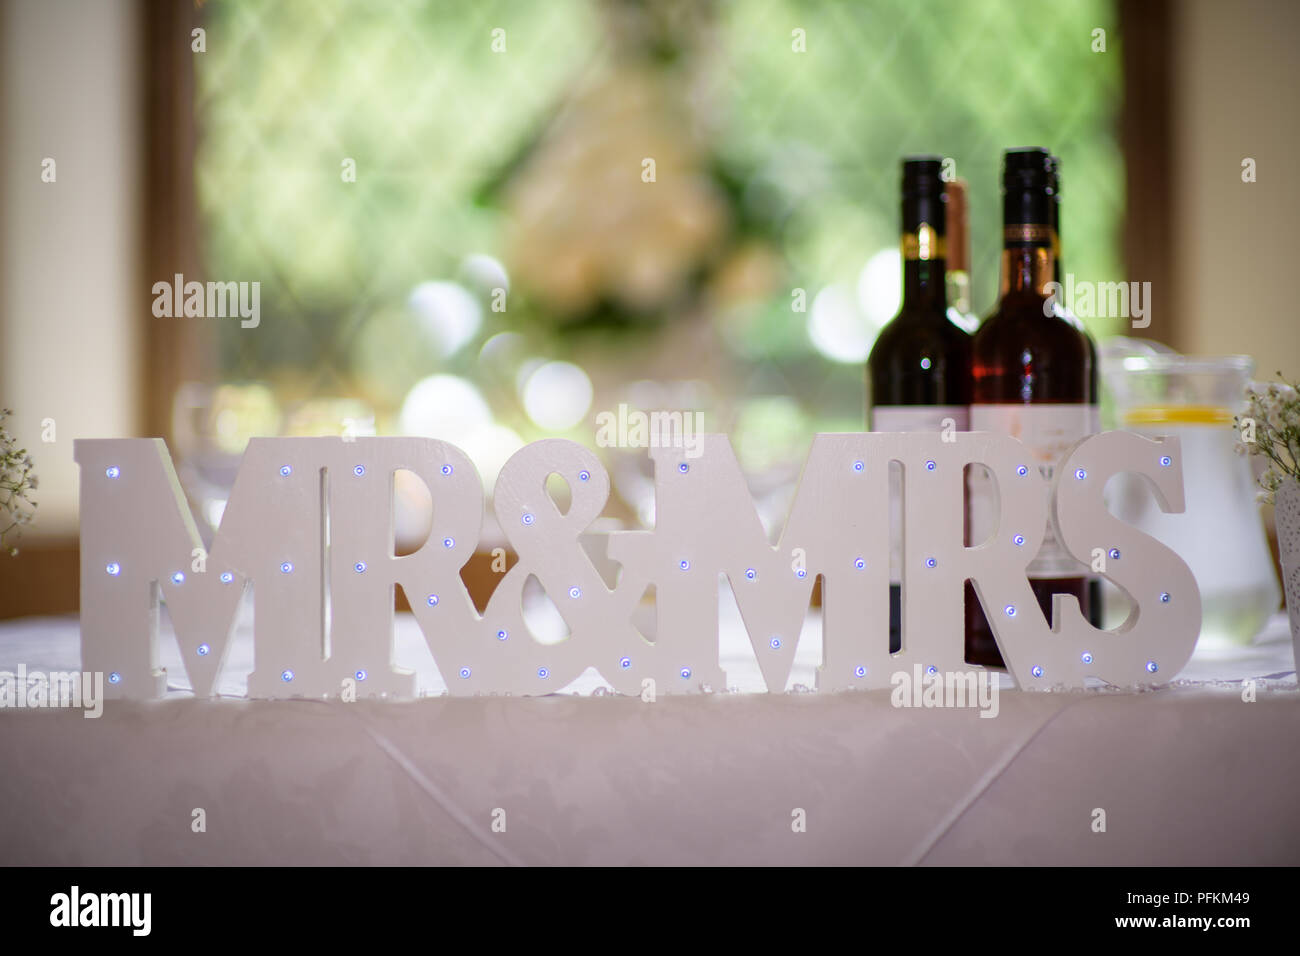 Wedding Mr And Mrs Table Decor from c8.alamy.com